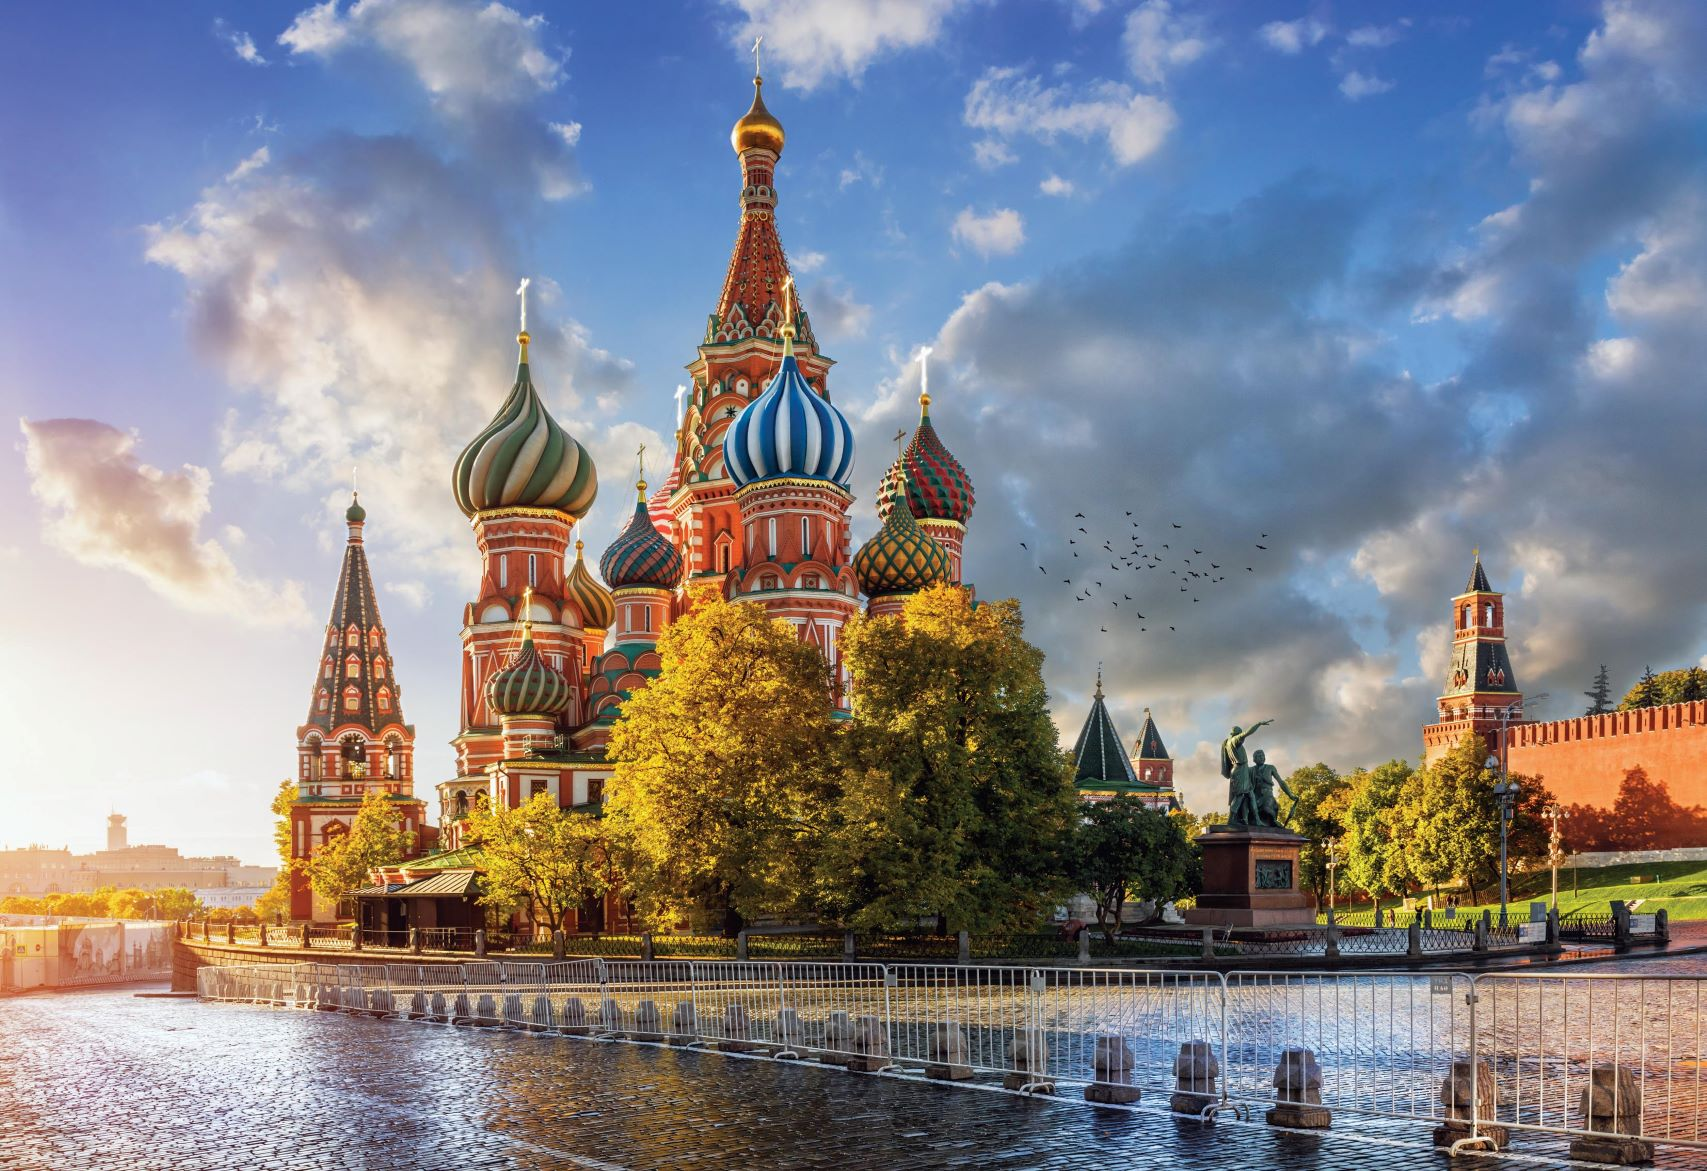 https://bsl.com.mt/wp-content/uploads/2021/04/shutterstock_762382336-page-5-moscow-and-st-petersburg.jpg